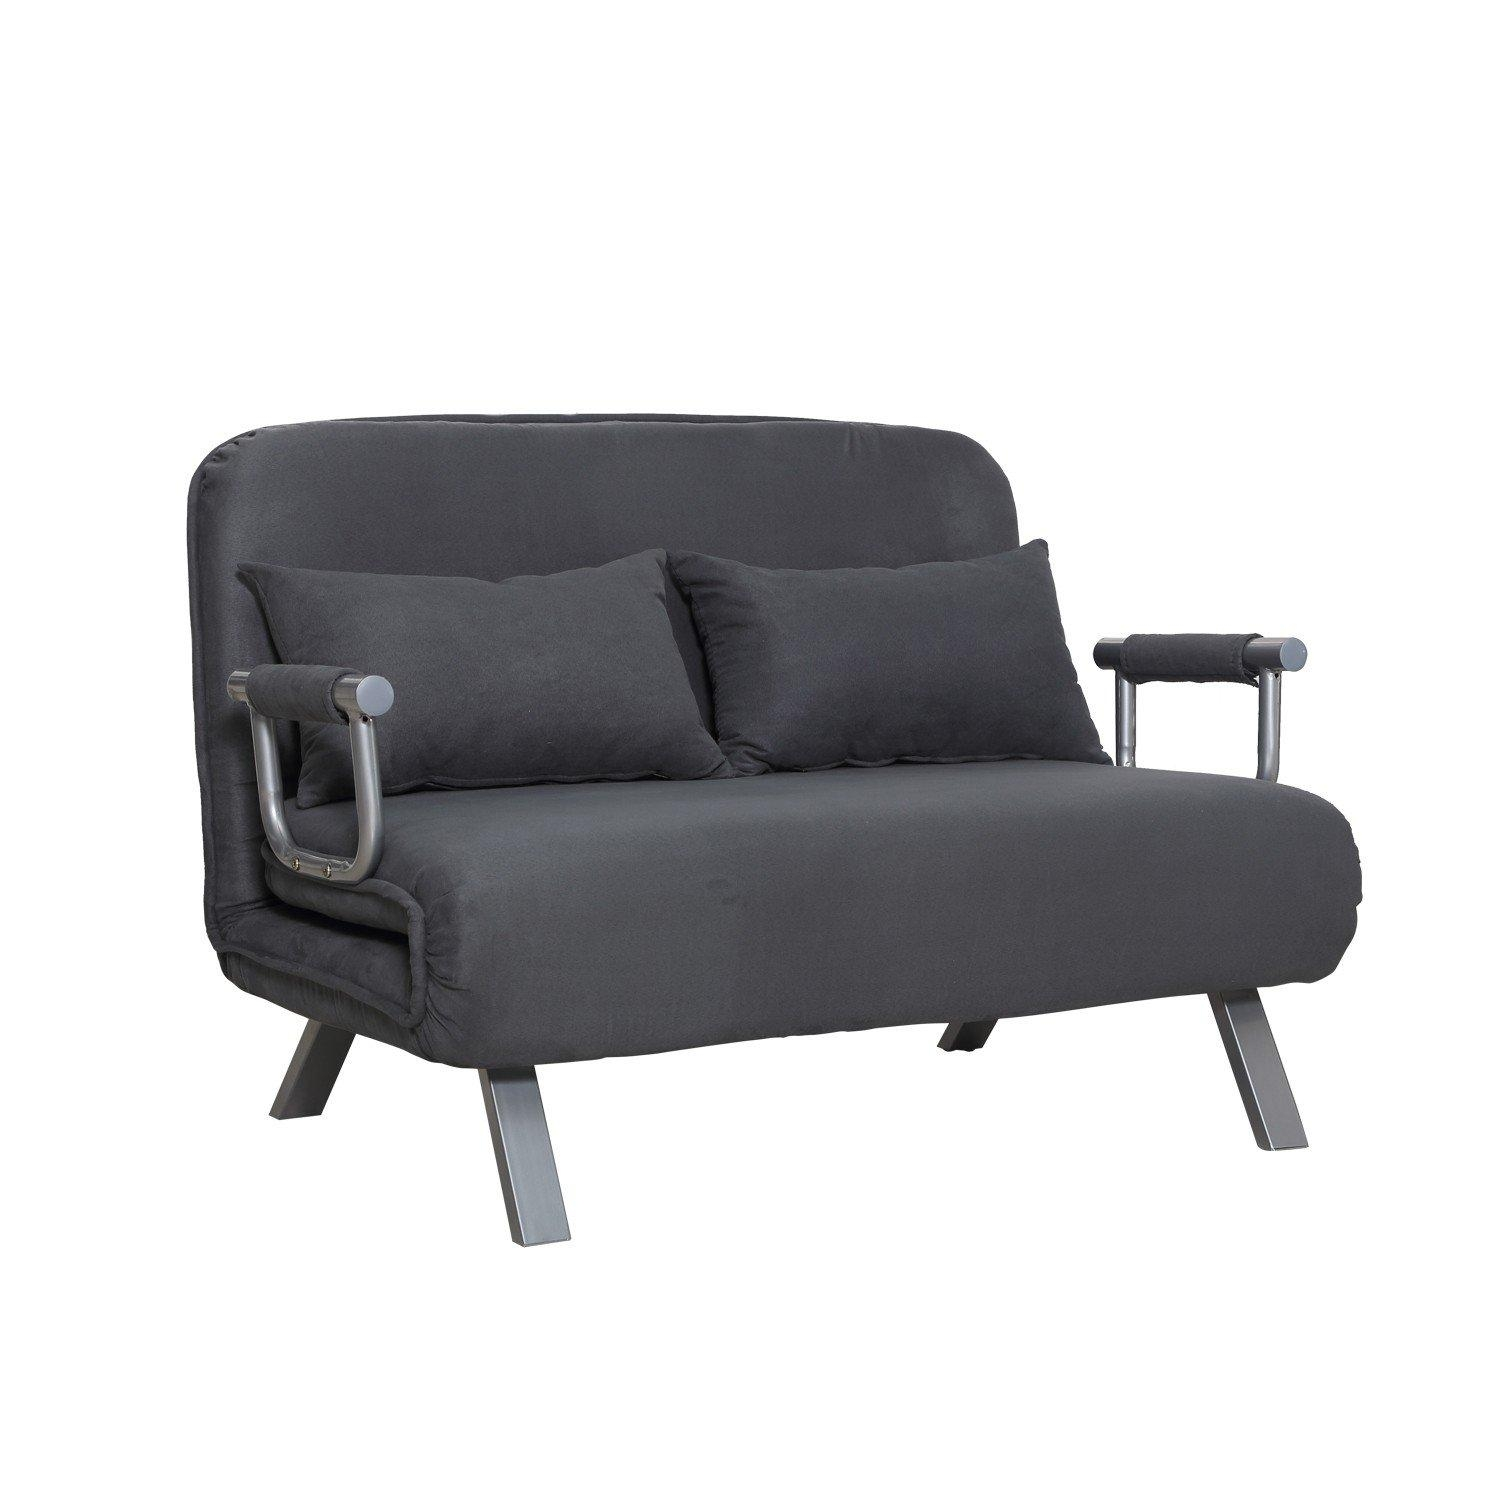 Suede Fabric Lounge Sofa Chair – Gray In Lounge Sofas And Chairs (View 15 of 20)